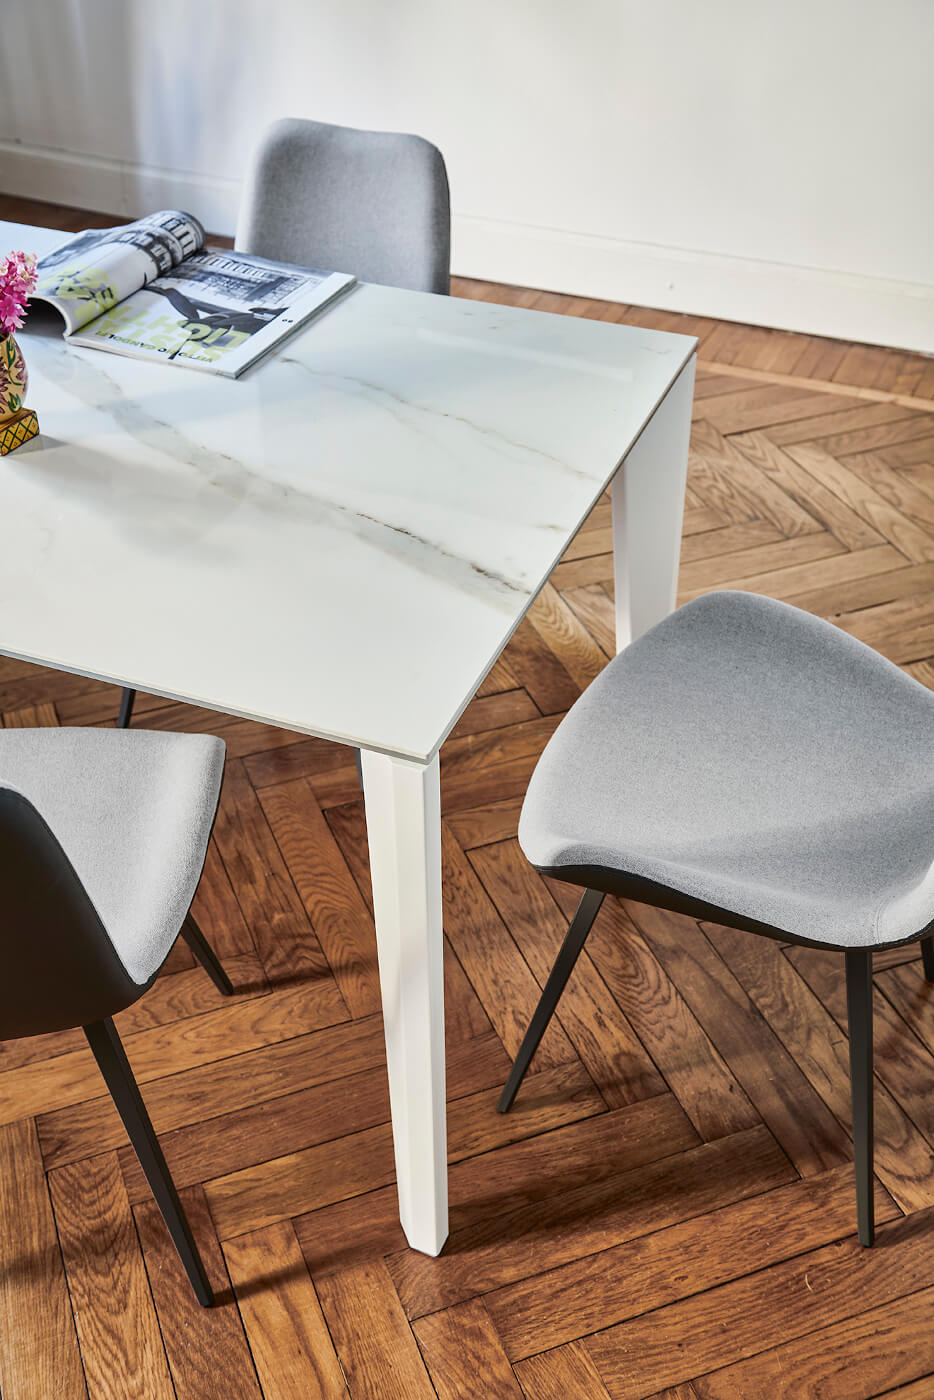 Detail of the Diamante table top in crystalceramic with calacatta marble effect